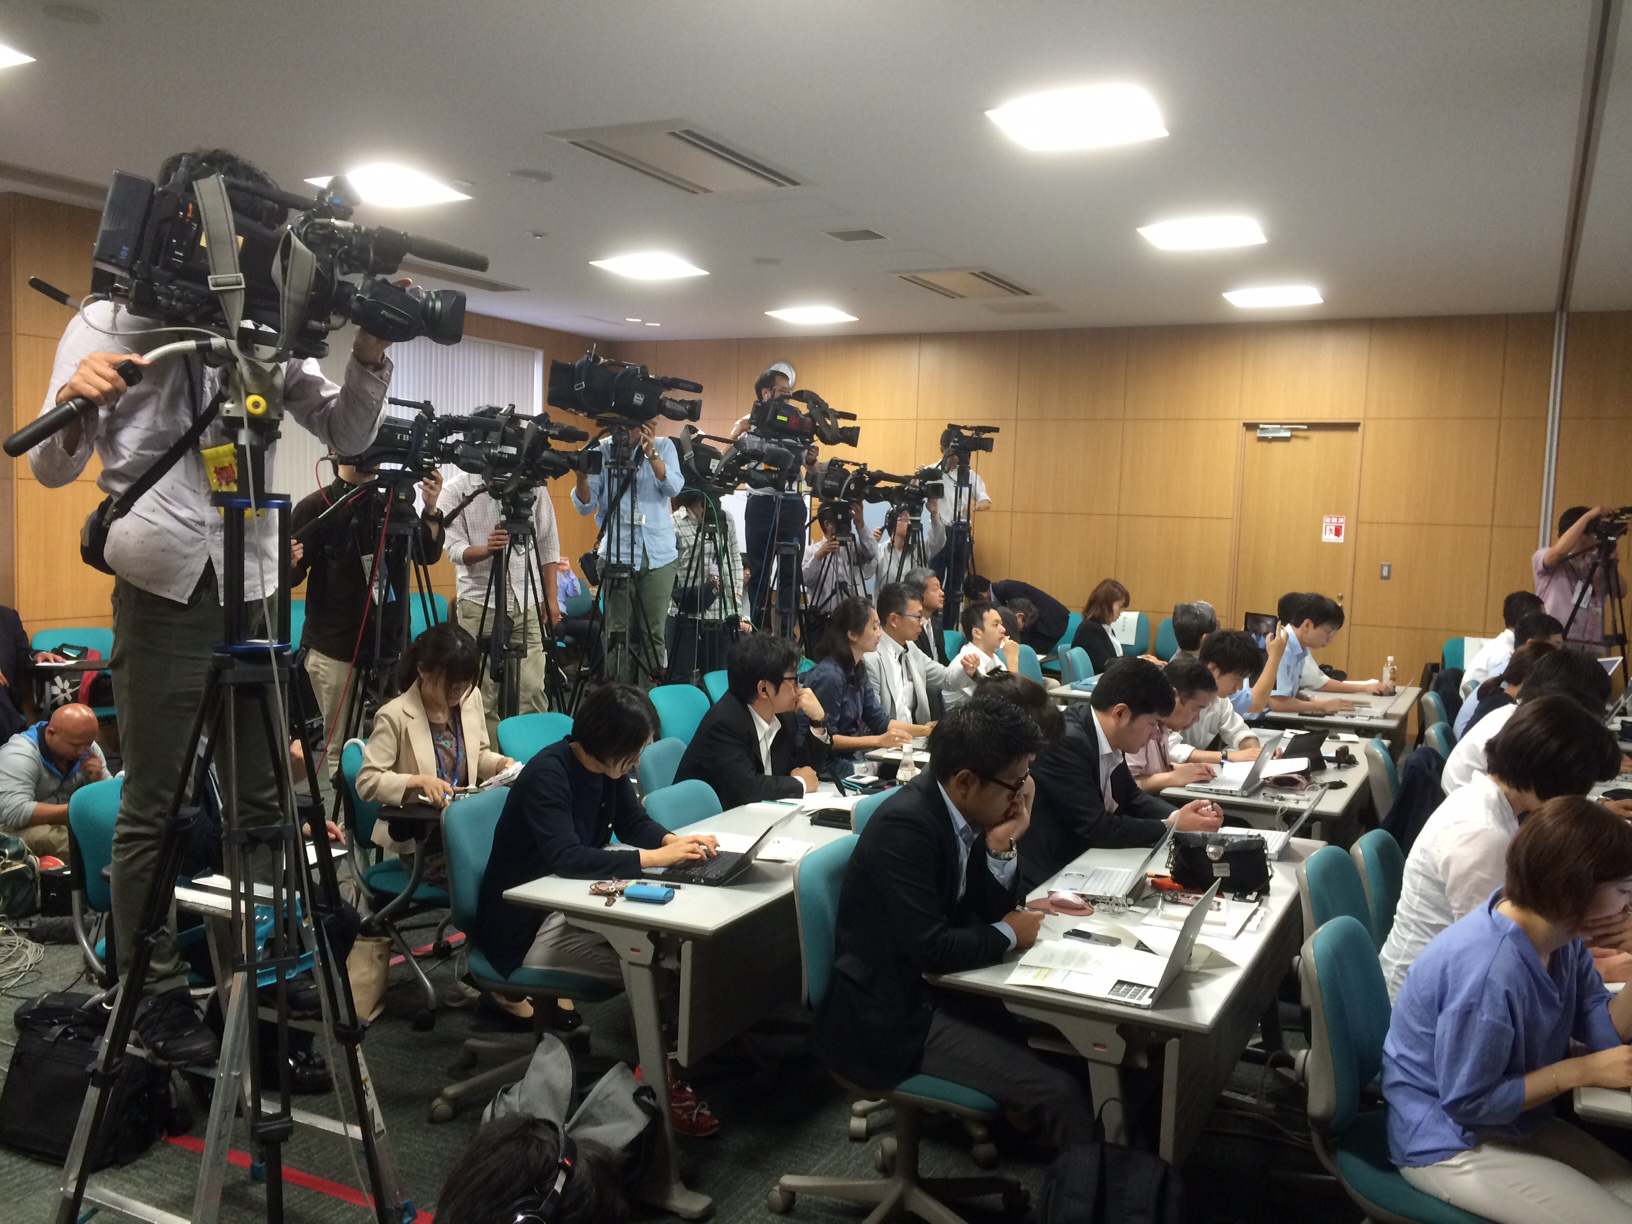 %22nihonium%22 press meeting